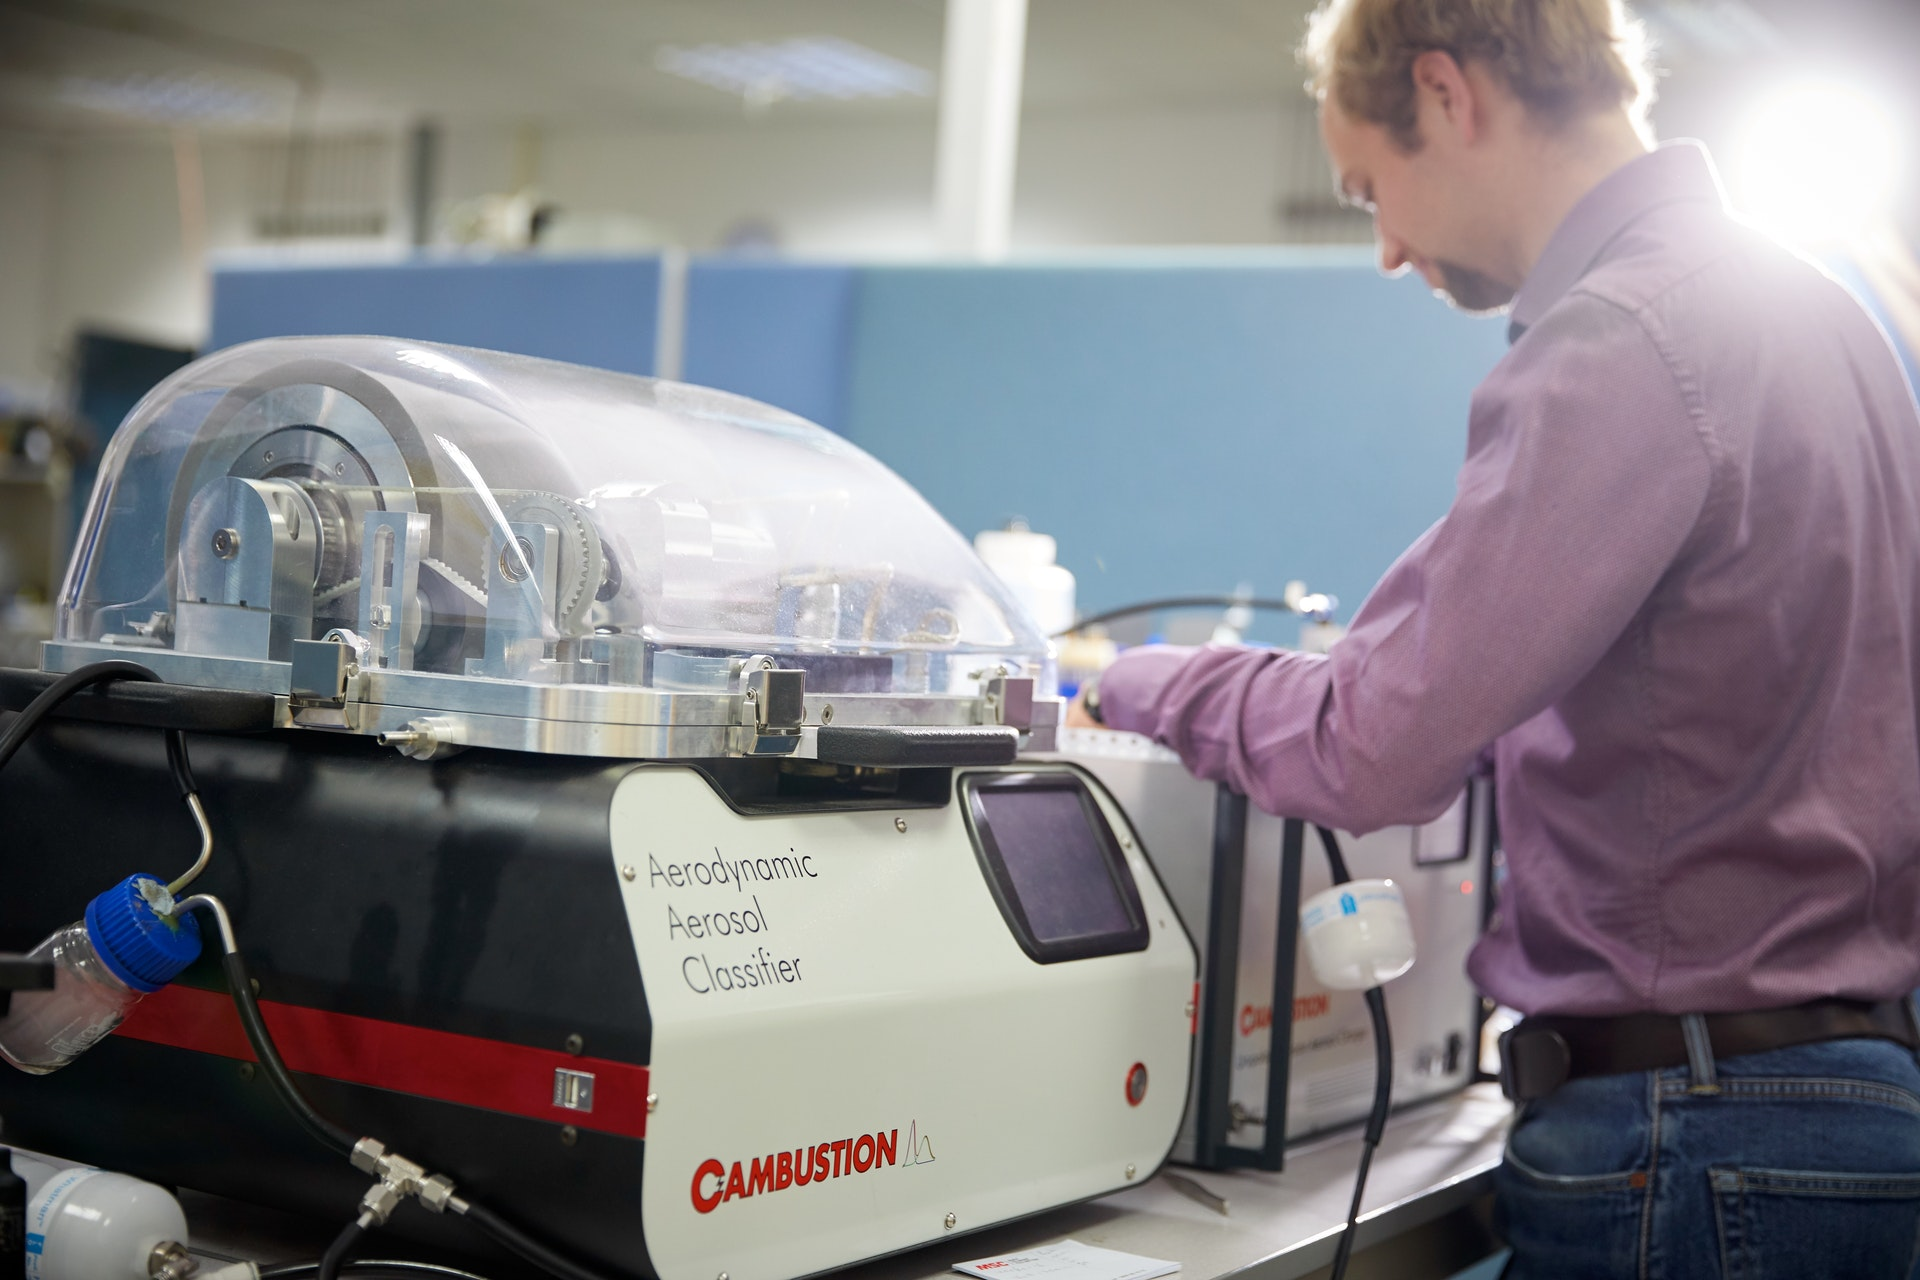 Cambustion AAC for mask penetration measurements